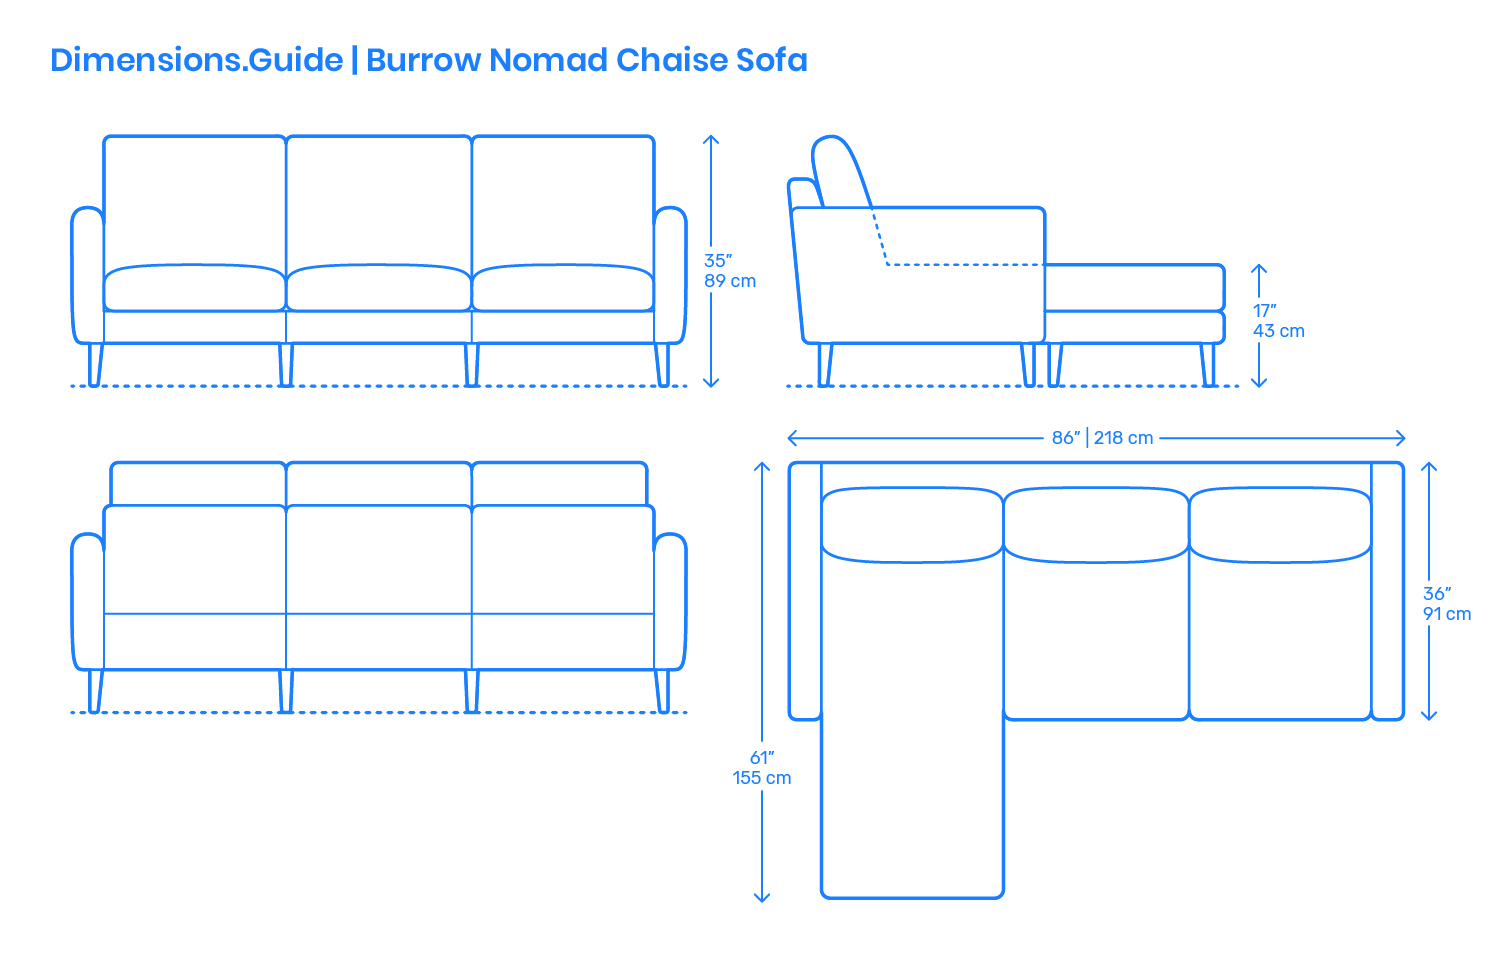 Burrow Nomad Chaise Sofa Dimensions Amp Drawings